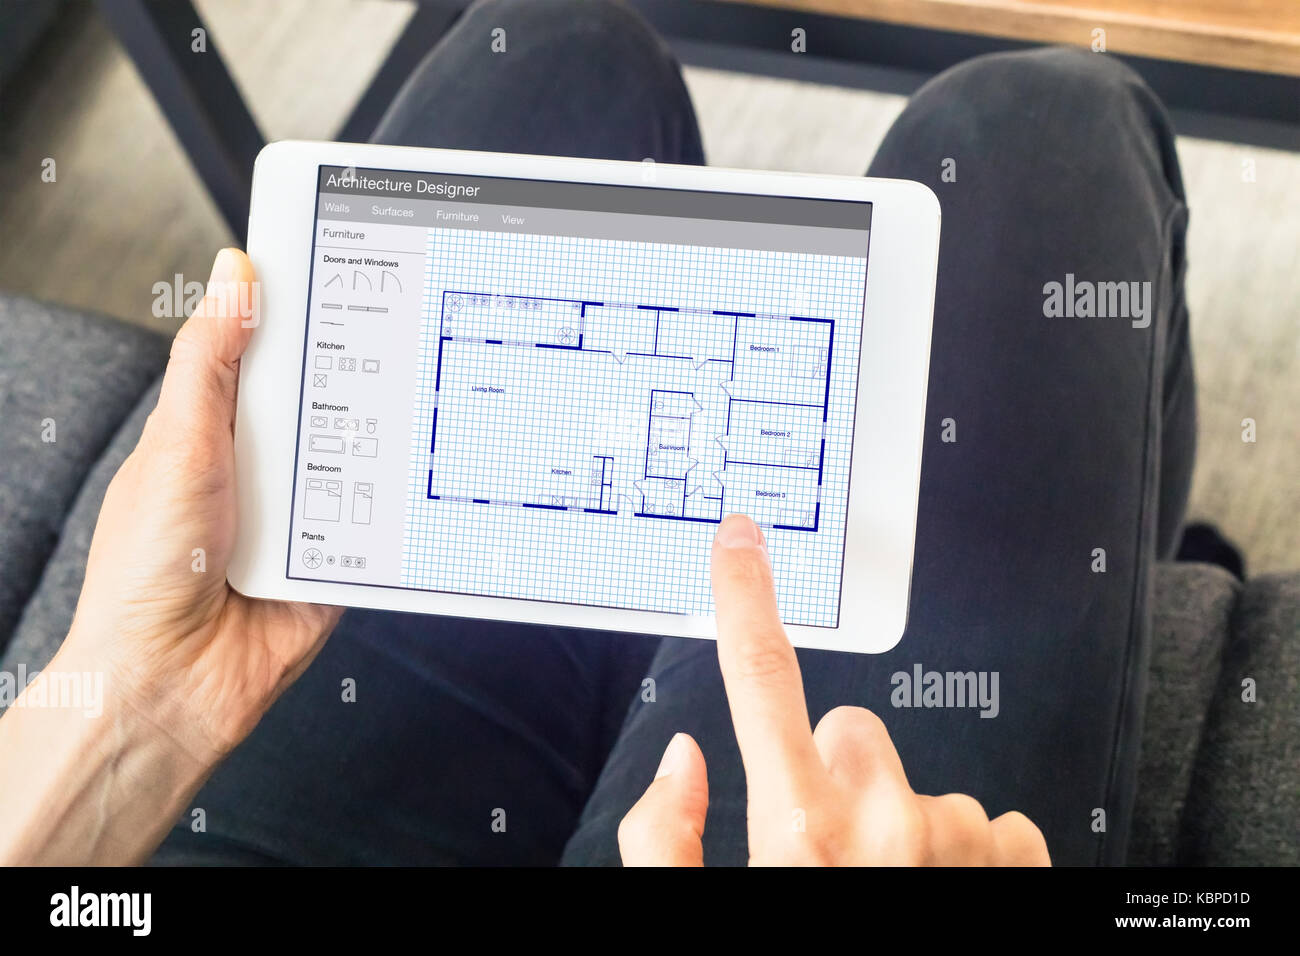 Person sketching a home design architecture project on a digital person sketching a home design architecture project on a digital tablet computer app showing a blueprint floor plan drawing malvernweather Gallery